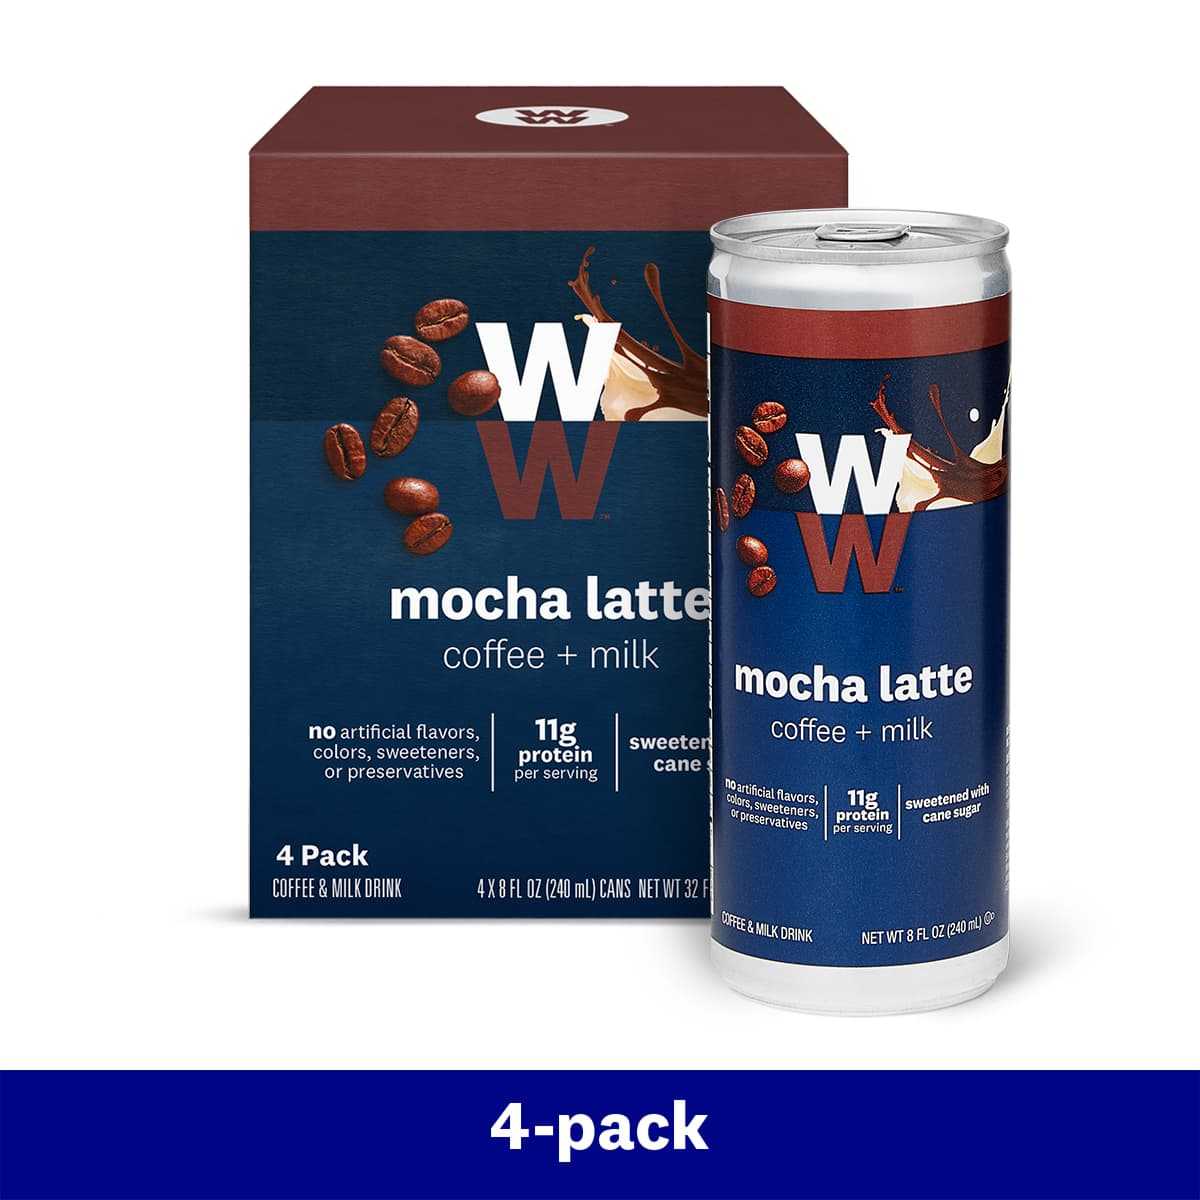 Mocha Latte - 4 Pack, box and can, 11 grams of protein per can, sweetened with cane sugar